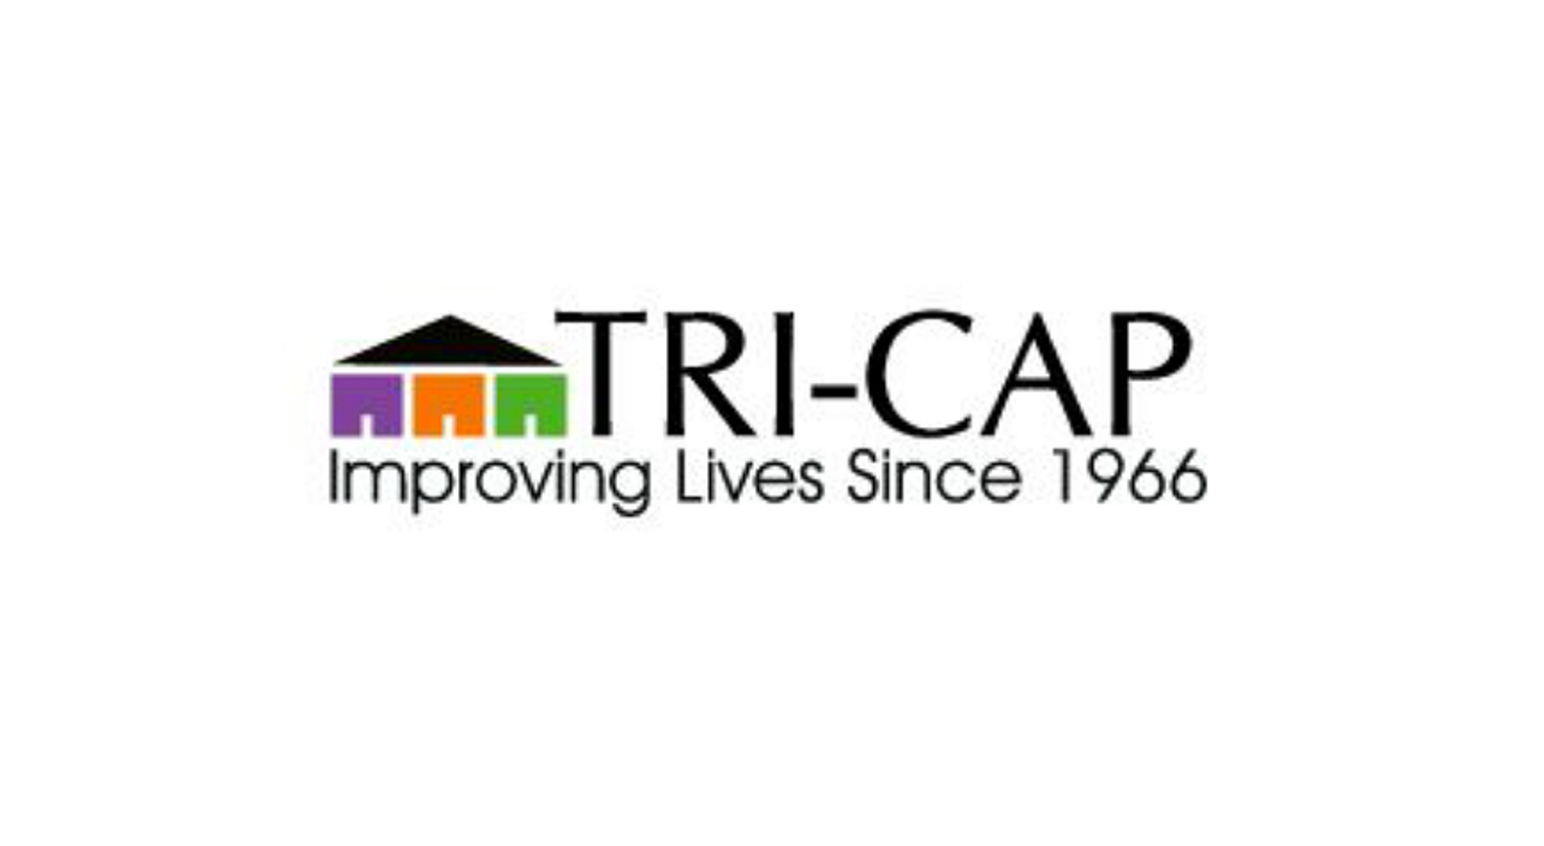 TRI-CAP Receives Energy Assistance Funds Through the CARES ACT to Help Local Residents in Need